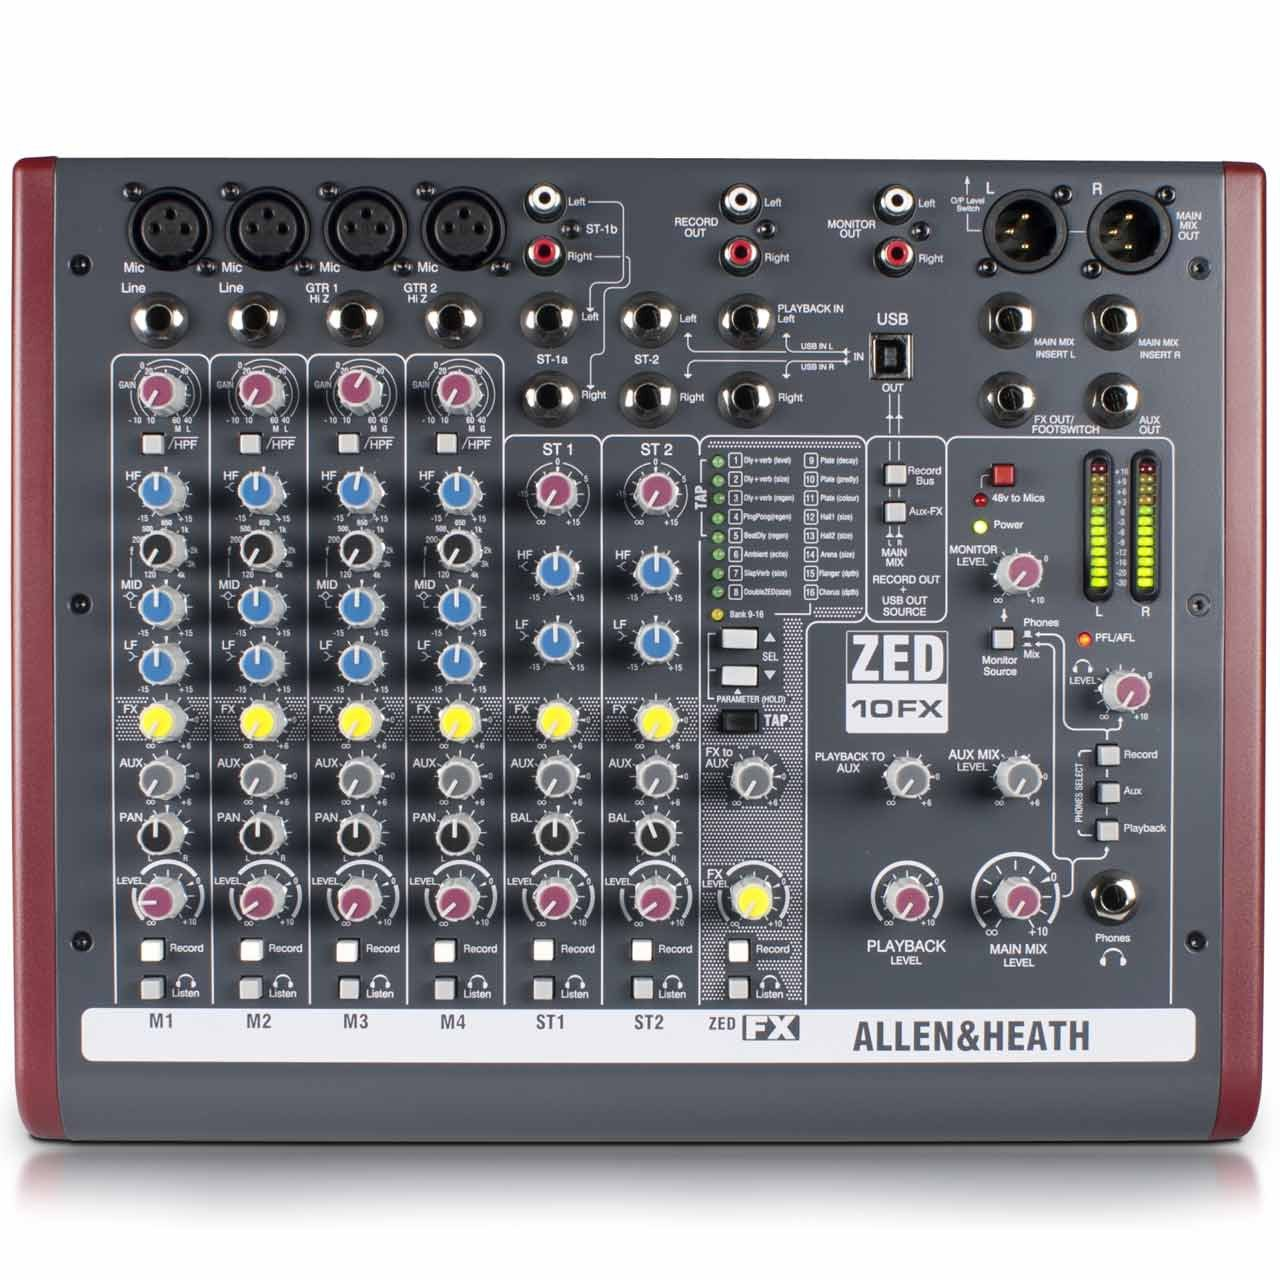 Analog Mixers - Allen & Heath ZED-10FX - Analogue Mixer With USB